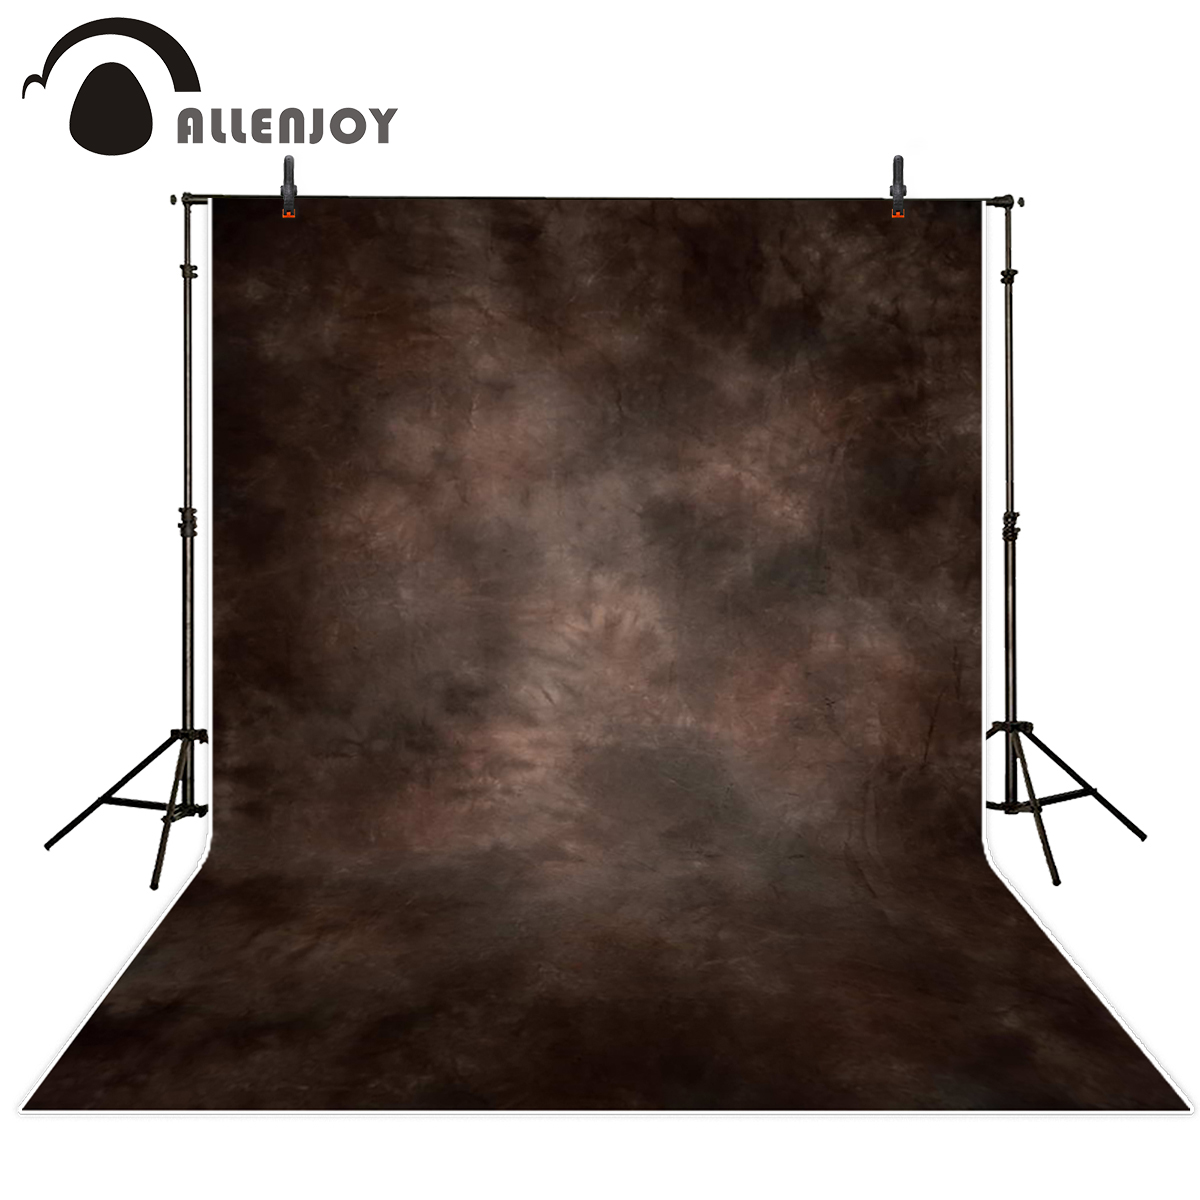 Allenjoy photography backdrop brown hazy fuzzy backgrounds photography background for photo studio коса al ko frs 4125